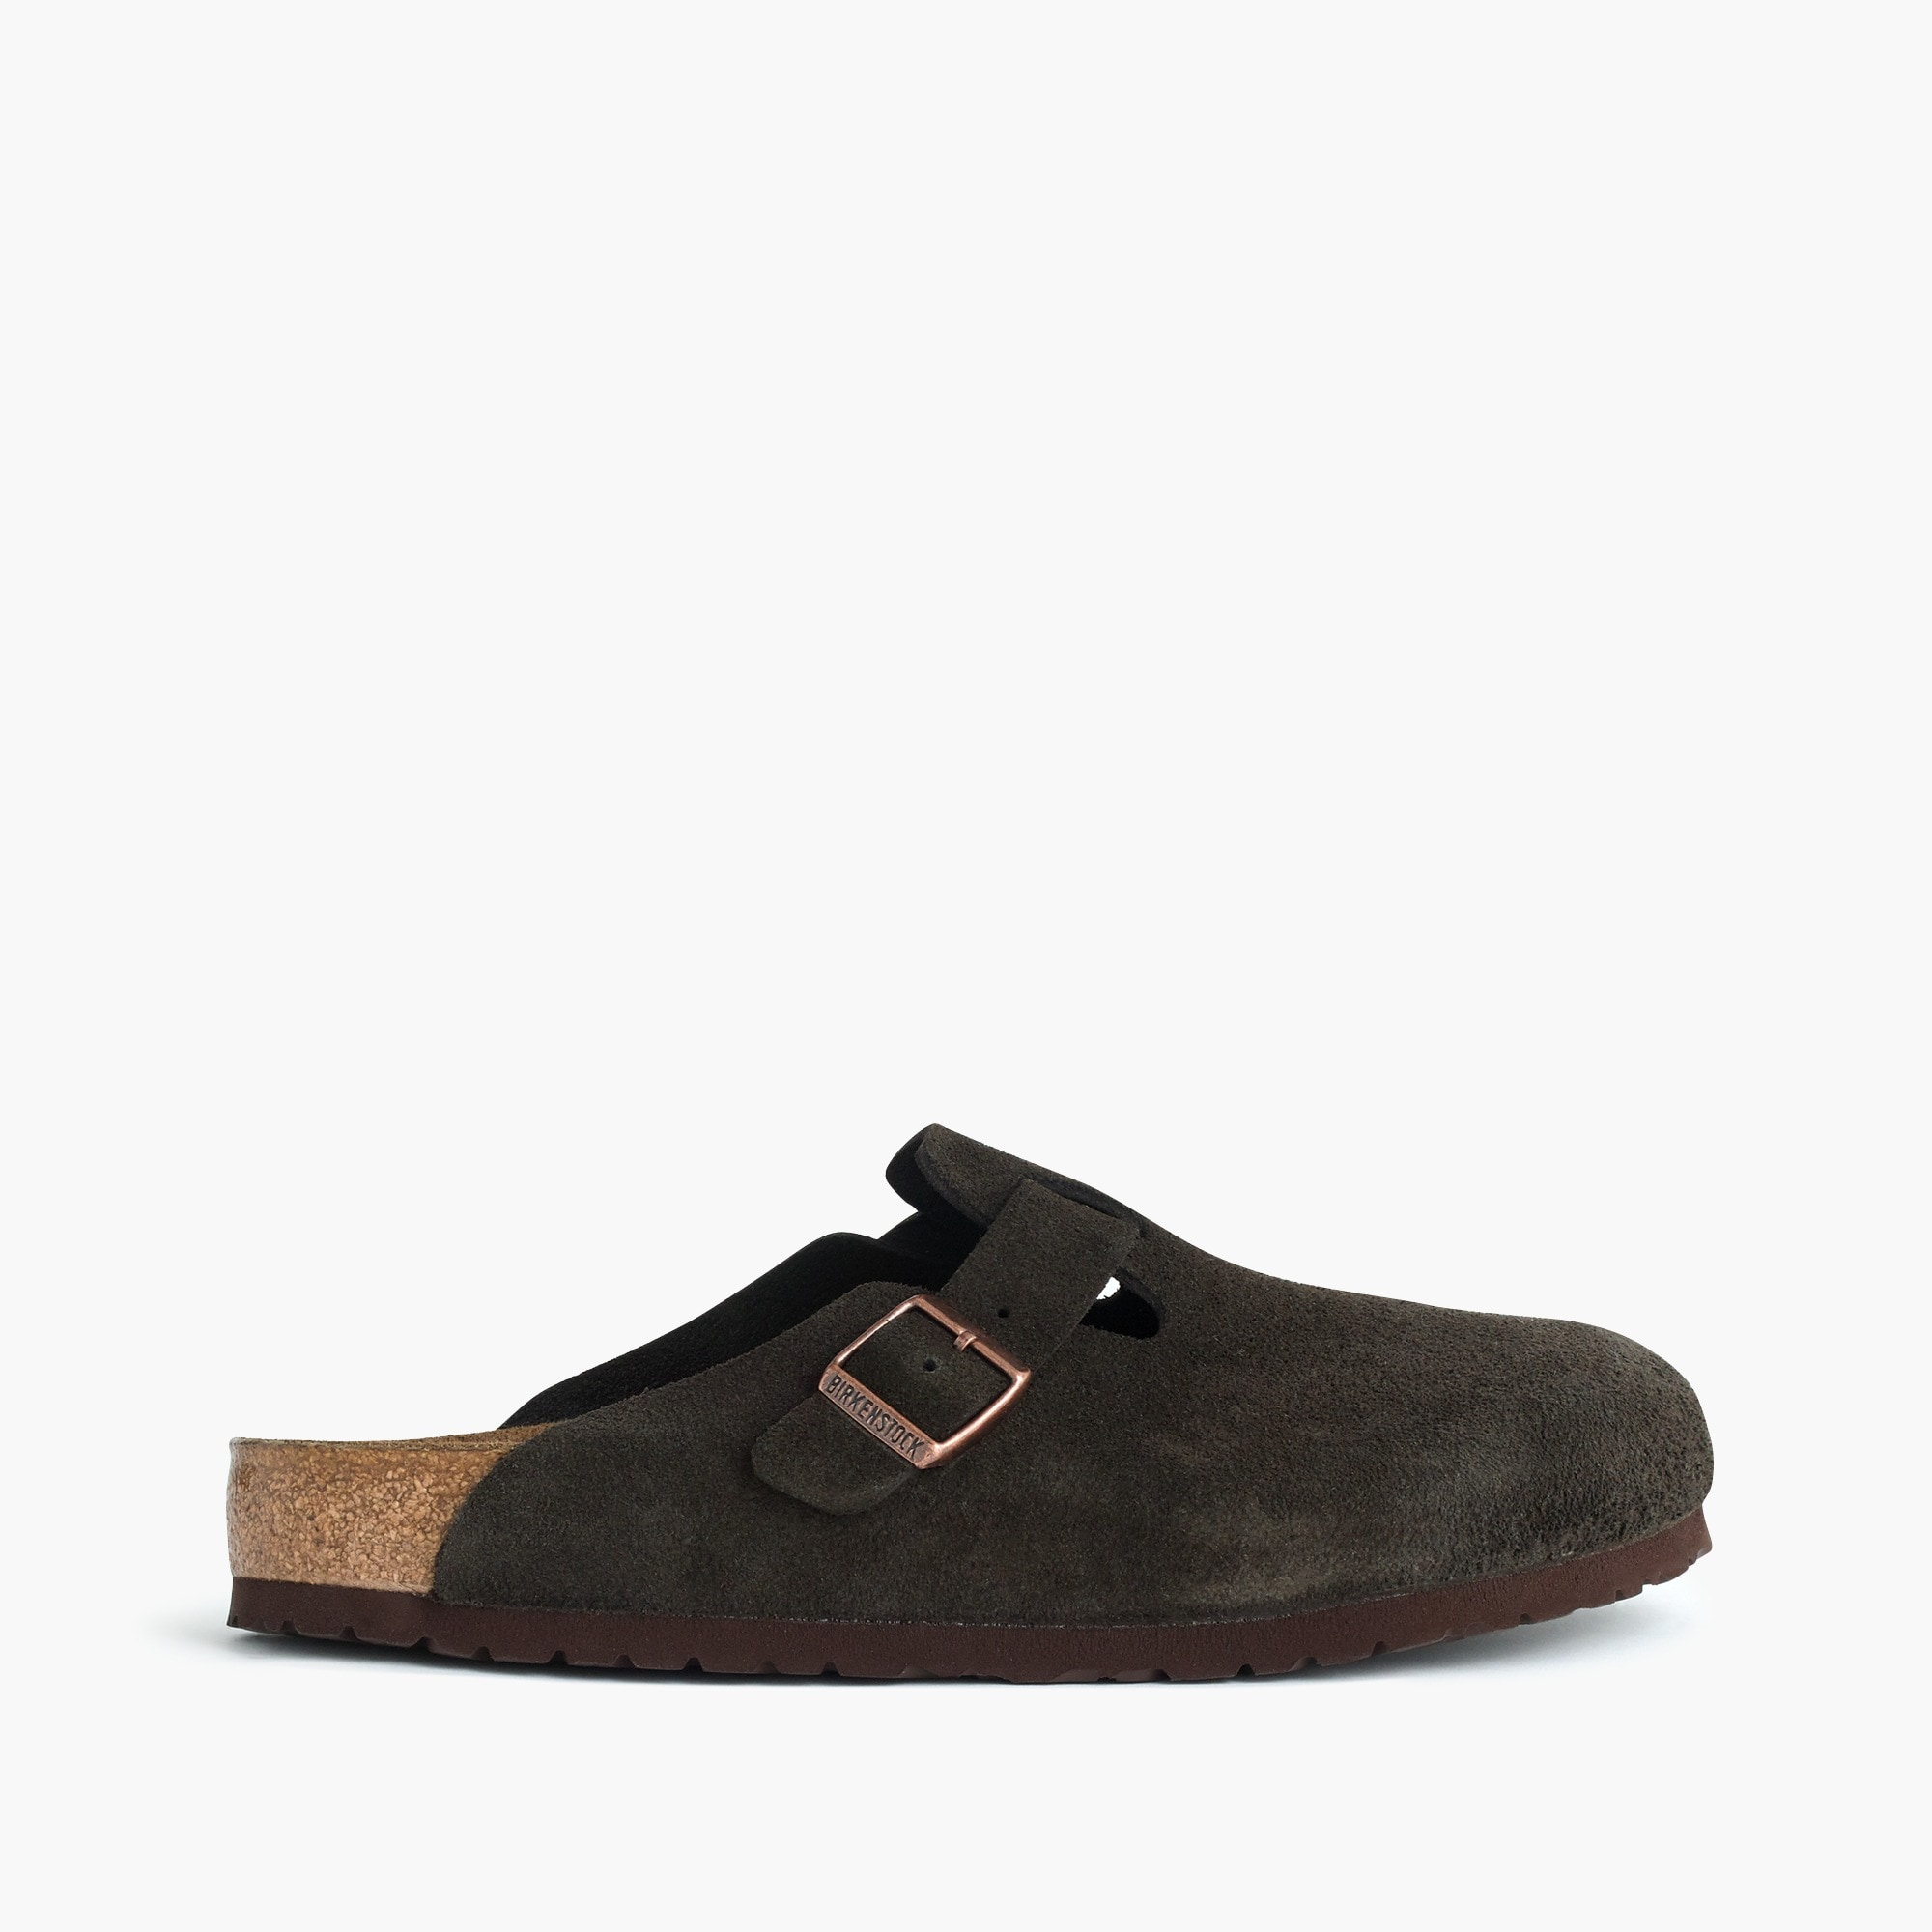 Birkenstock® Boston clogs